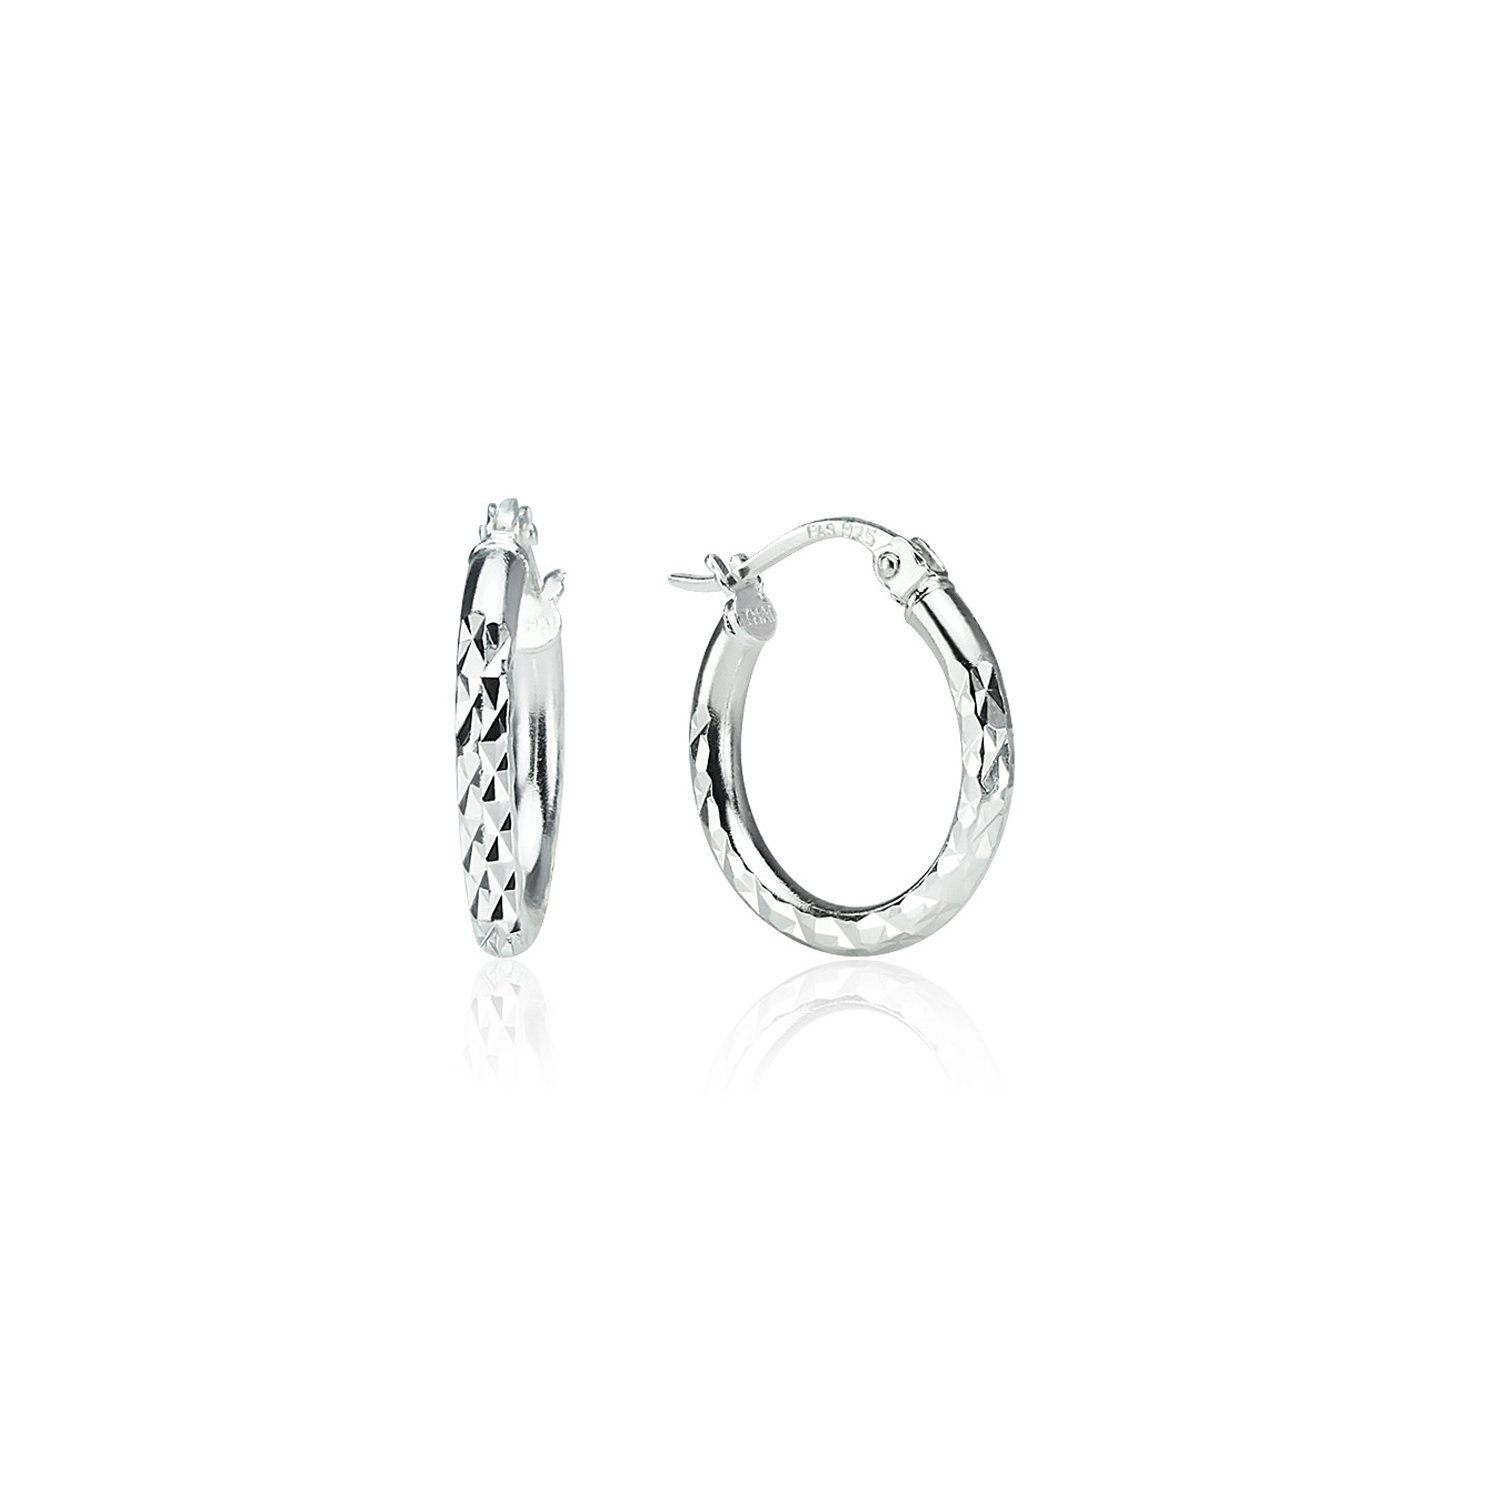 LOVVE Sterling Silver High Polished Round Diamond Textured Click-Top Hoop Earrings, 2x20mm